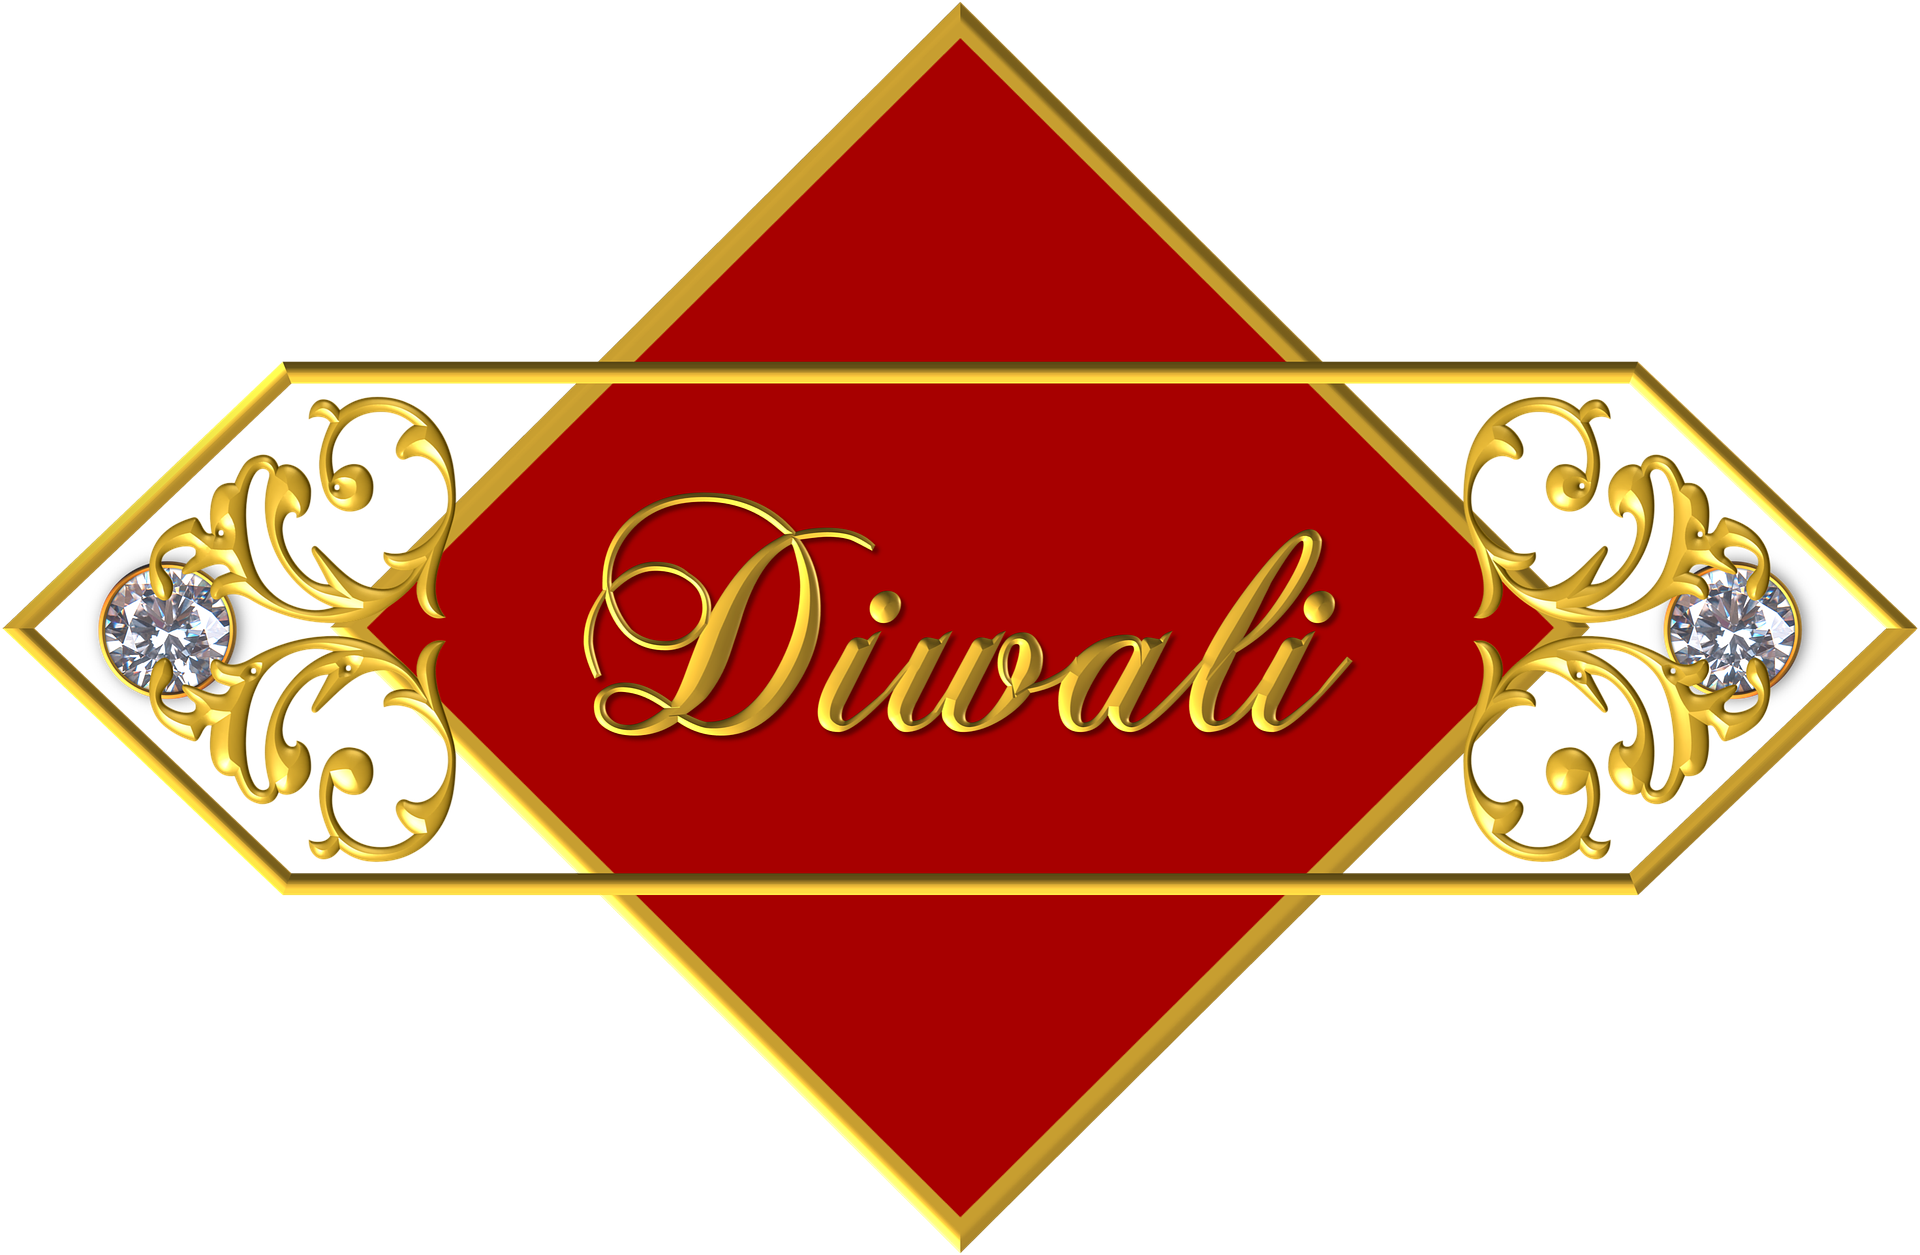 Diwali Transparent Png Pictures: You Are What You Think